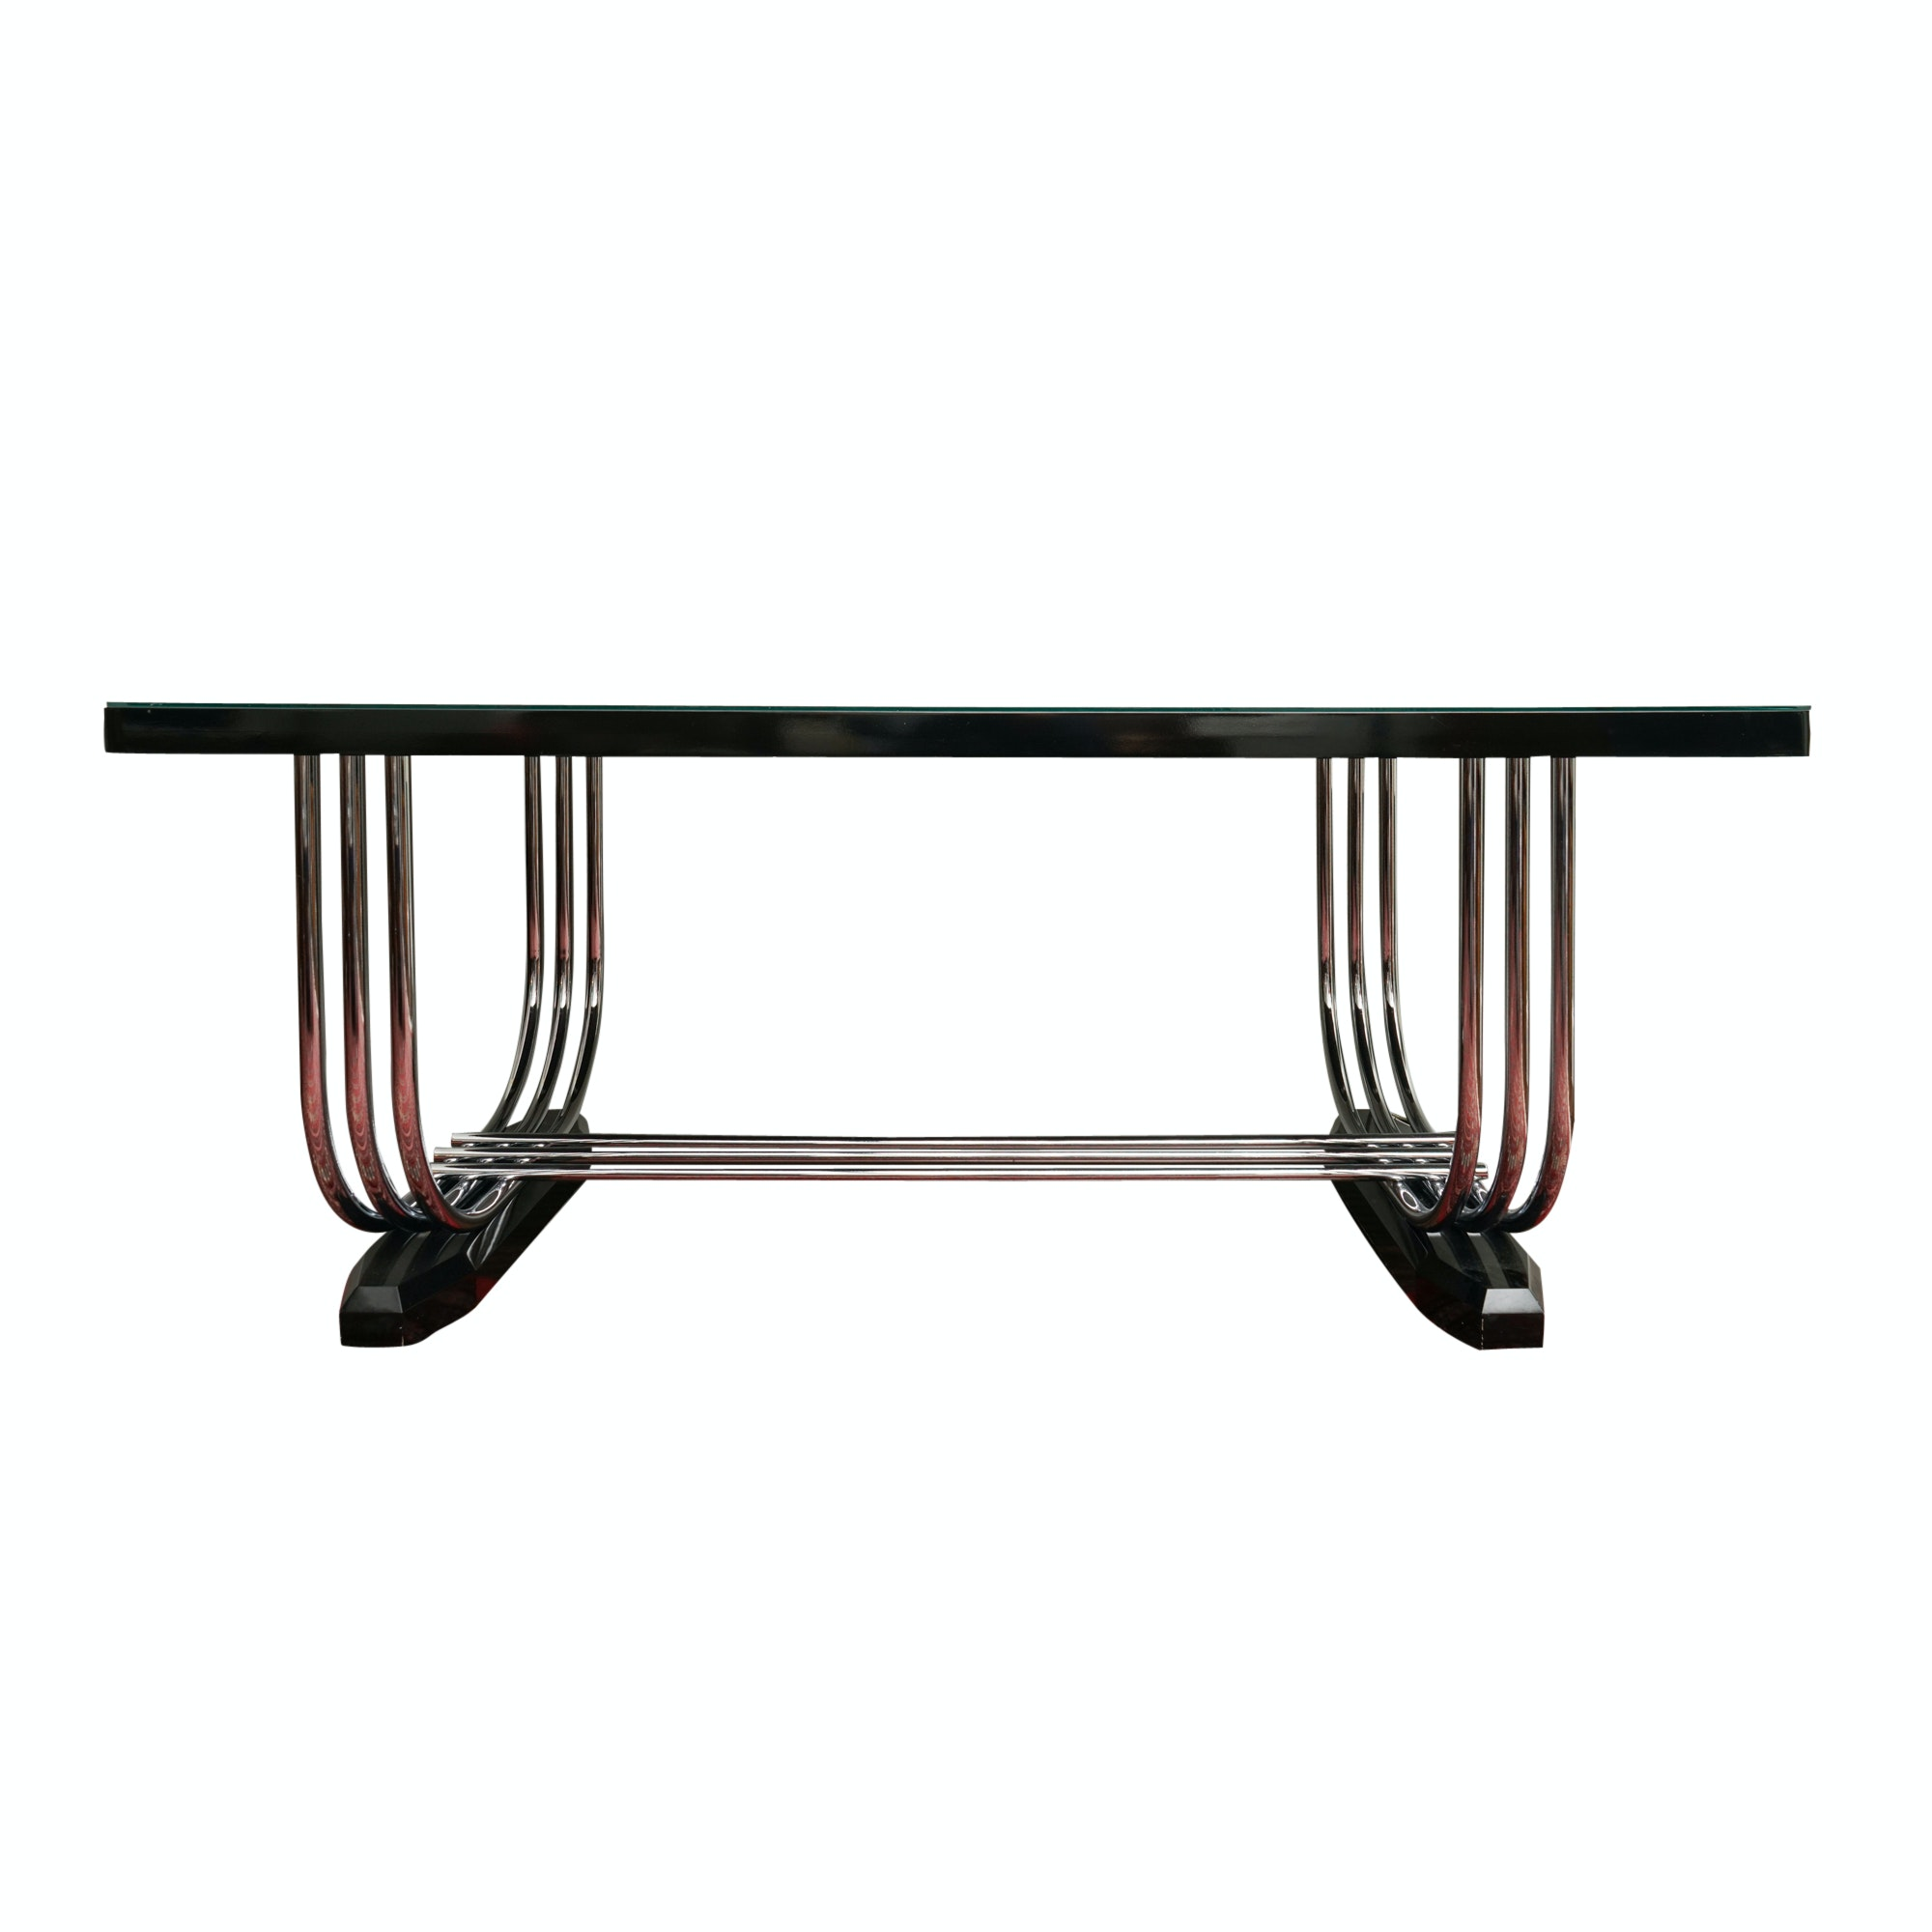 English Art Deco Chromed Metal and Ebonized Wood Dining Table by P.E.L.